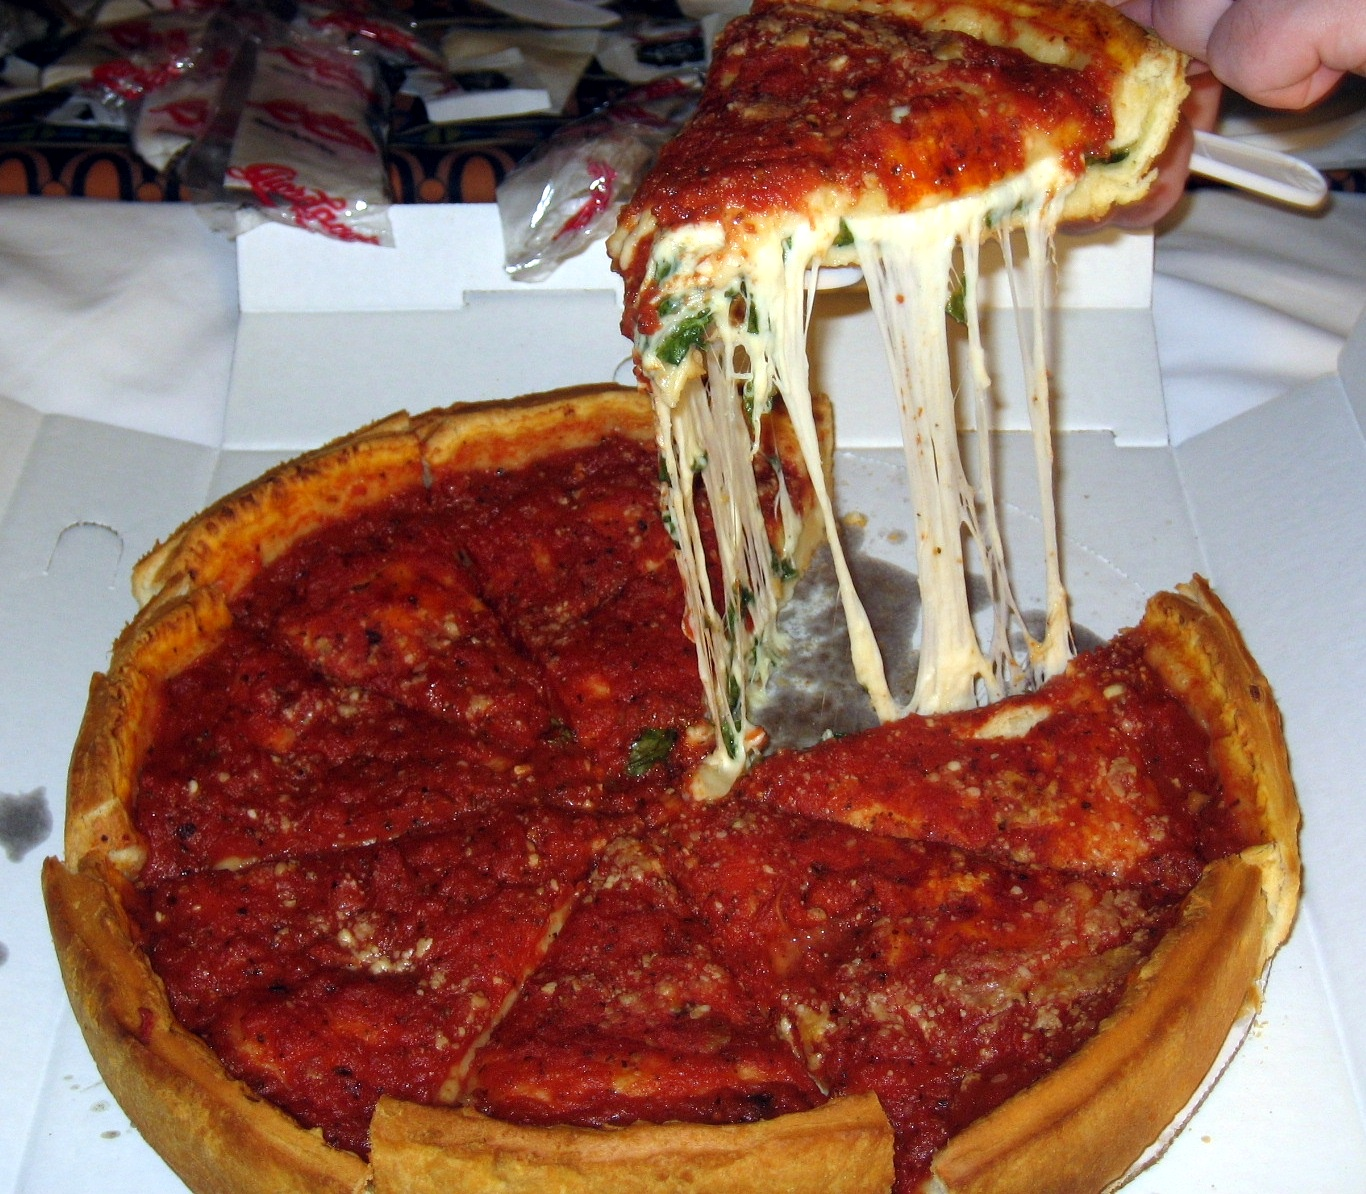 Based in Chicago, Giordano's Famous Stuffed Pizza has been serving its world-famous pizza since , when founders and immigrants brothers Efren and Joseph Boglio became discouraged by the lack of authentic pizza available in the Chicago area/5().